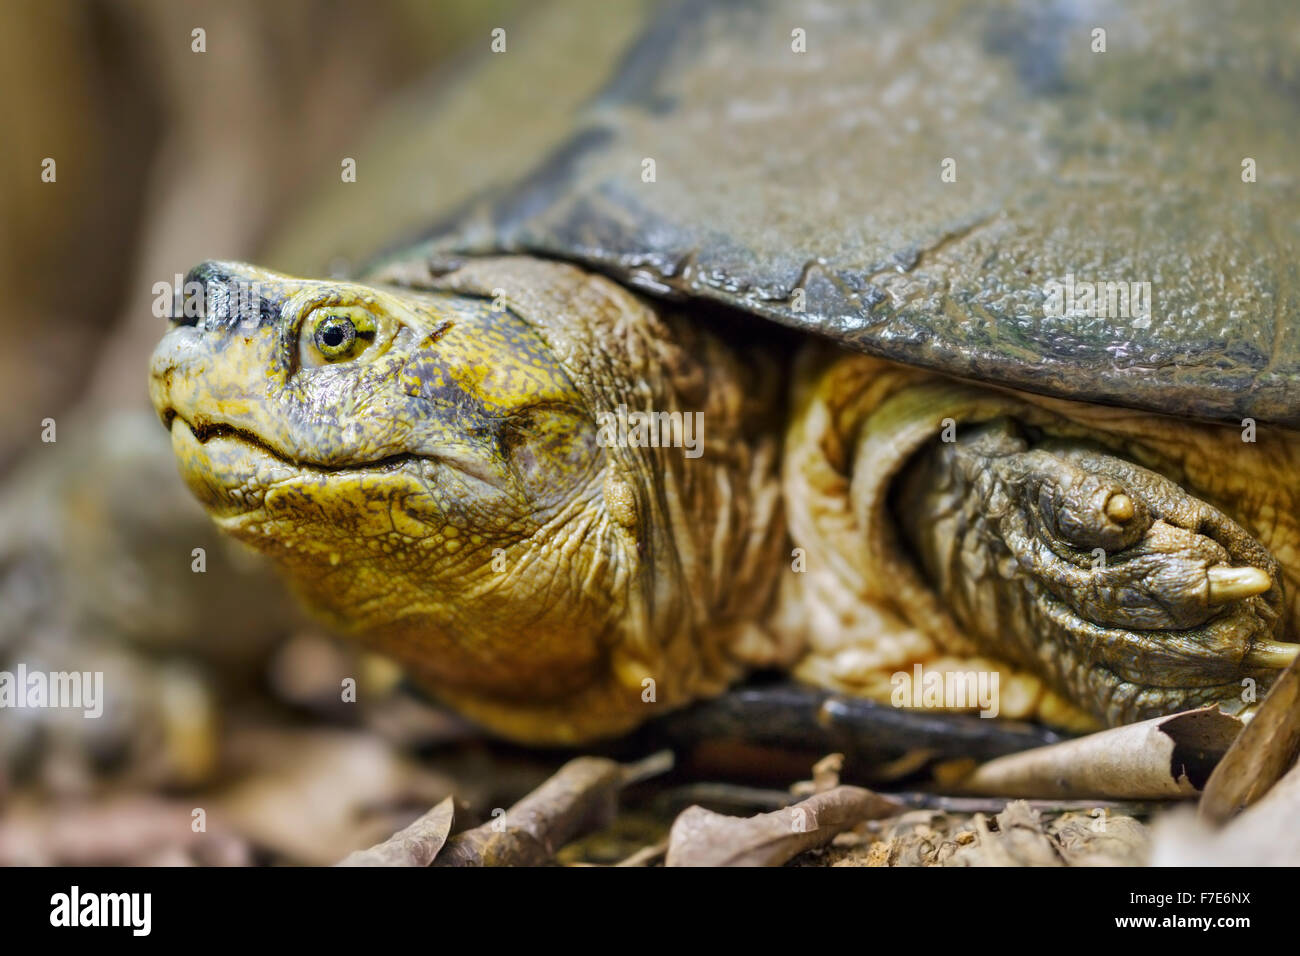 Endangered Yellow Headed Temple Turtle (Heosemys annandalii) at the Cuc Phuong Turtle Conservation Center in Vietnam. - Stock Image